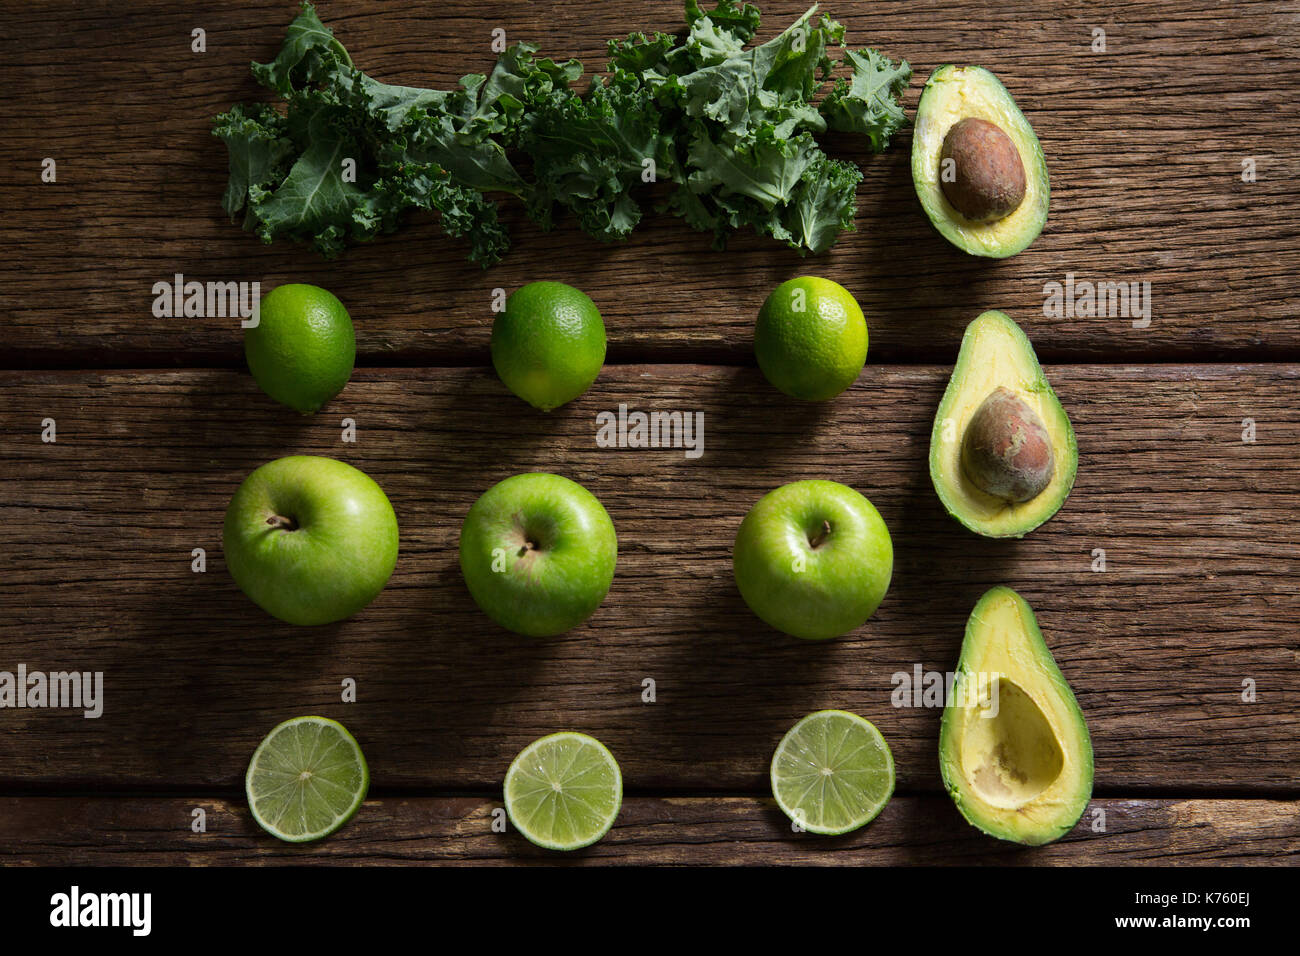 Overhead of mustard greens, lemon, avocado and green apple arranged on wooden table - Stock Image